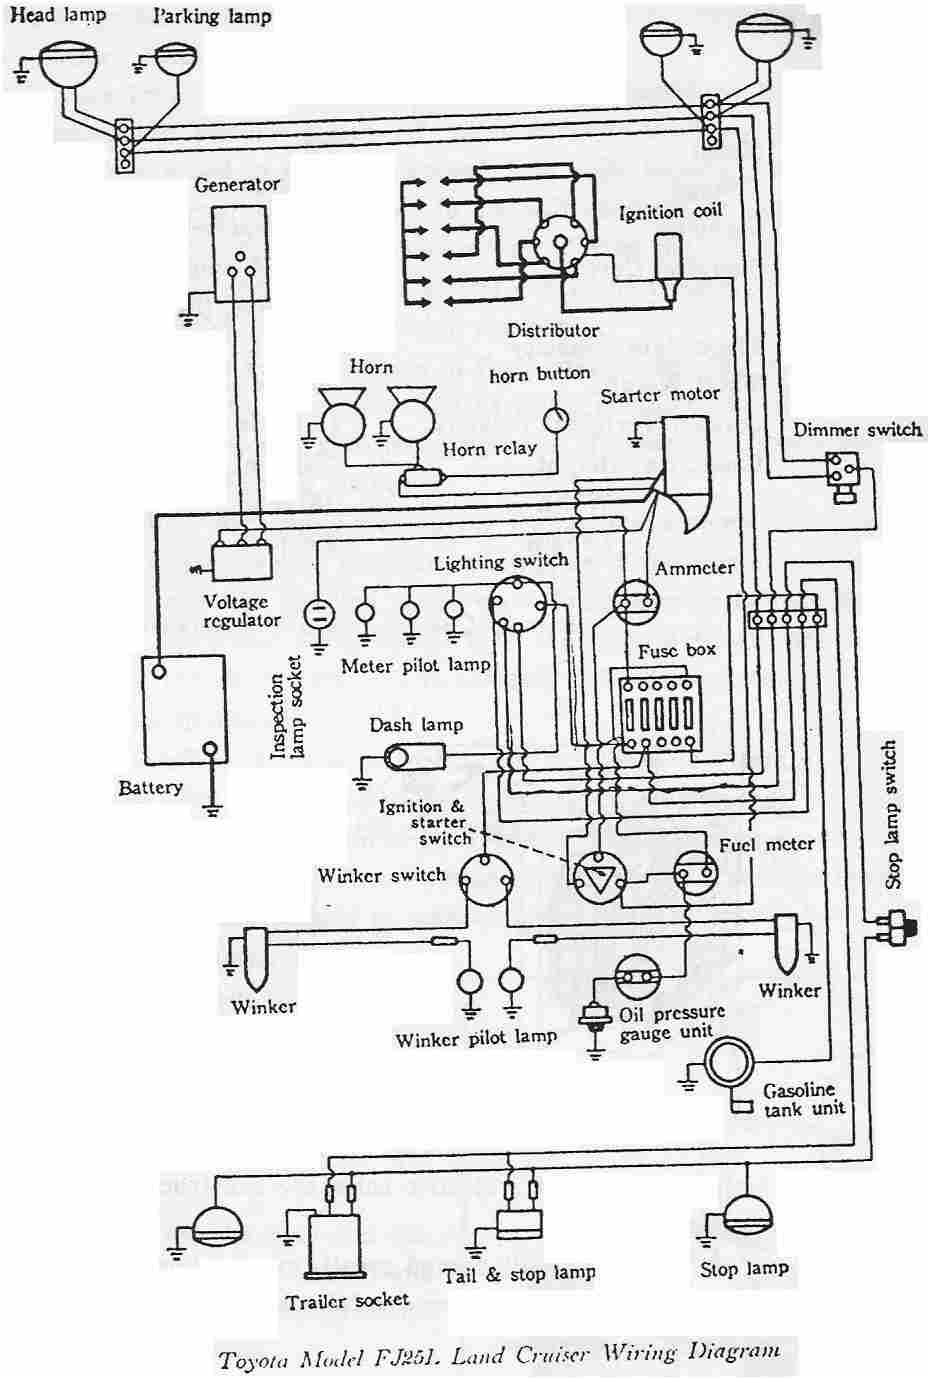 medium resolution of toyota land cruiser fj25 electrical wiring diagram wiring diagram for toro proline 724